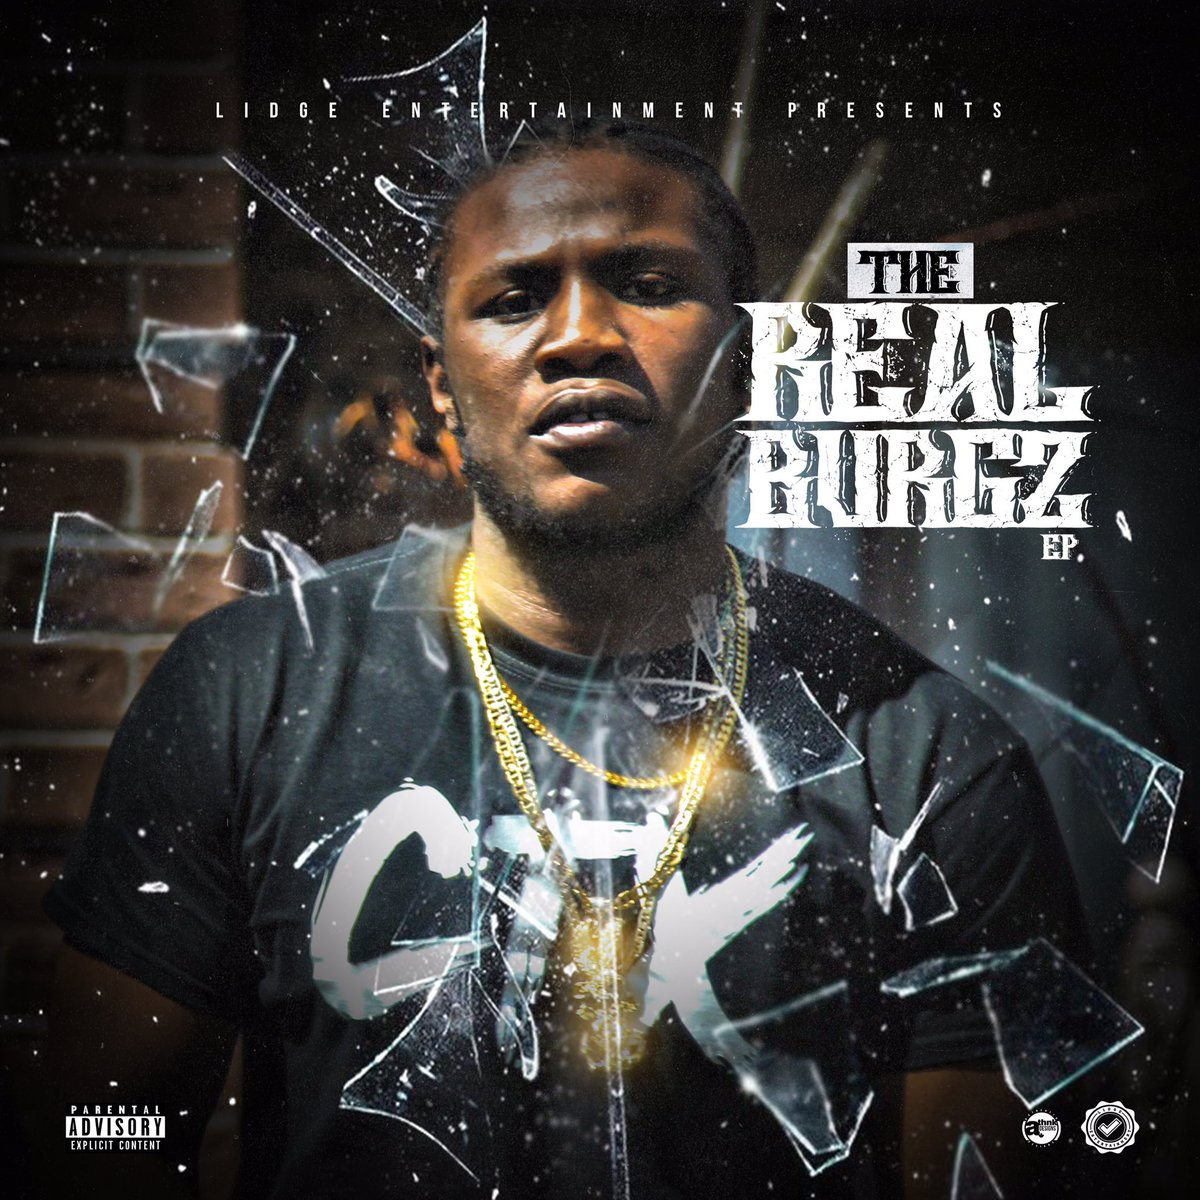 Everyone go get#TheRealBurgz EP out now on #iTunes #AppleMusic #Spotify #Googleplay &amp; #Tidal! Support #Real #Toronto #Music ! #UDigg ®<br>http://pic.twitter.com/3mHhr6UZPF